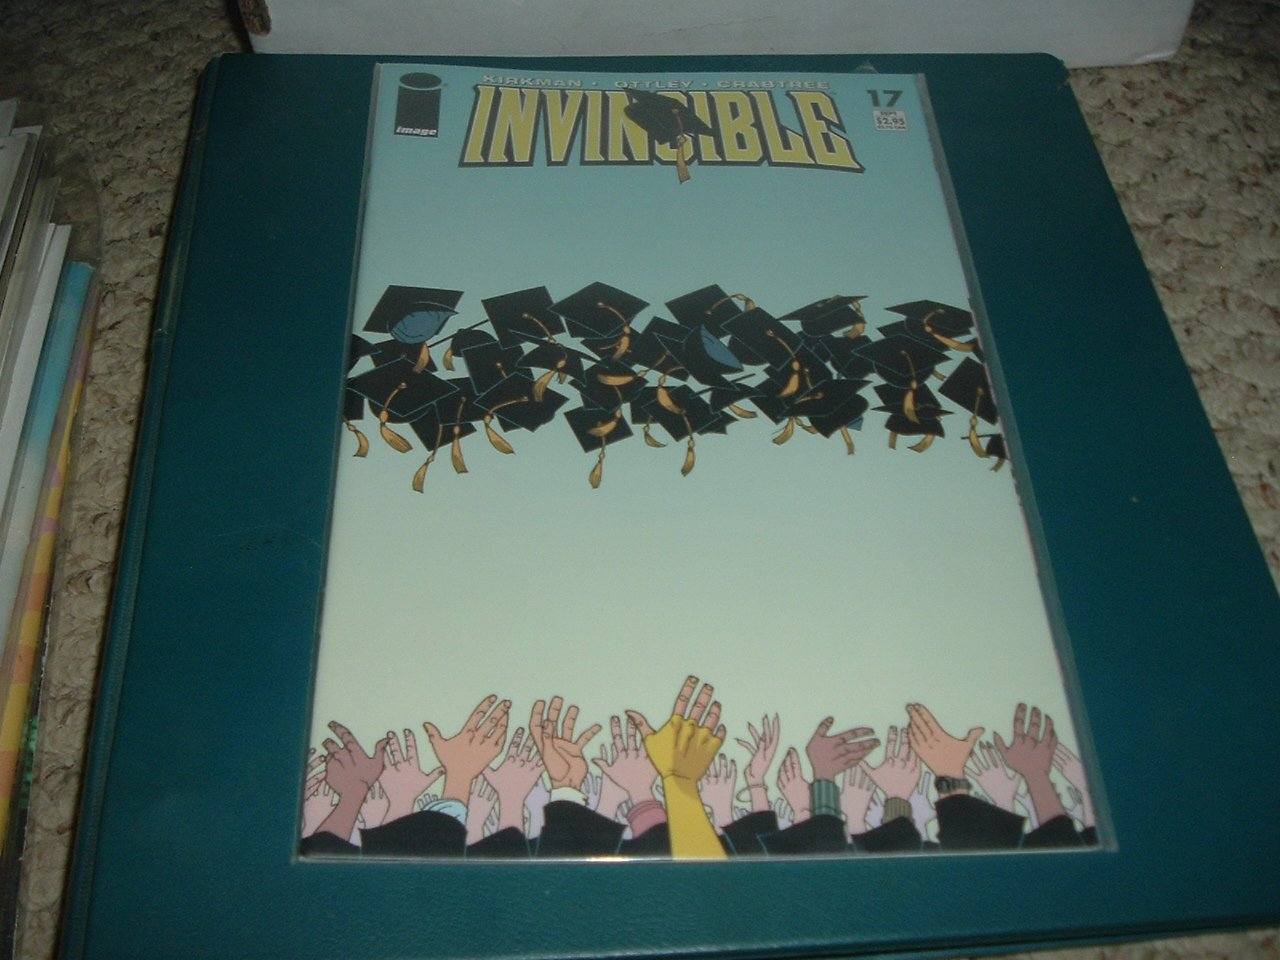 Invincible #17 NEAR MINT (Image Comics 2004) Kirkman, Save $$$ with Shipping Special, comic for sale